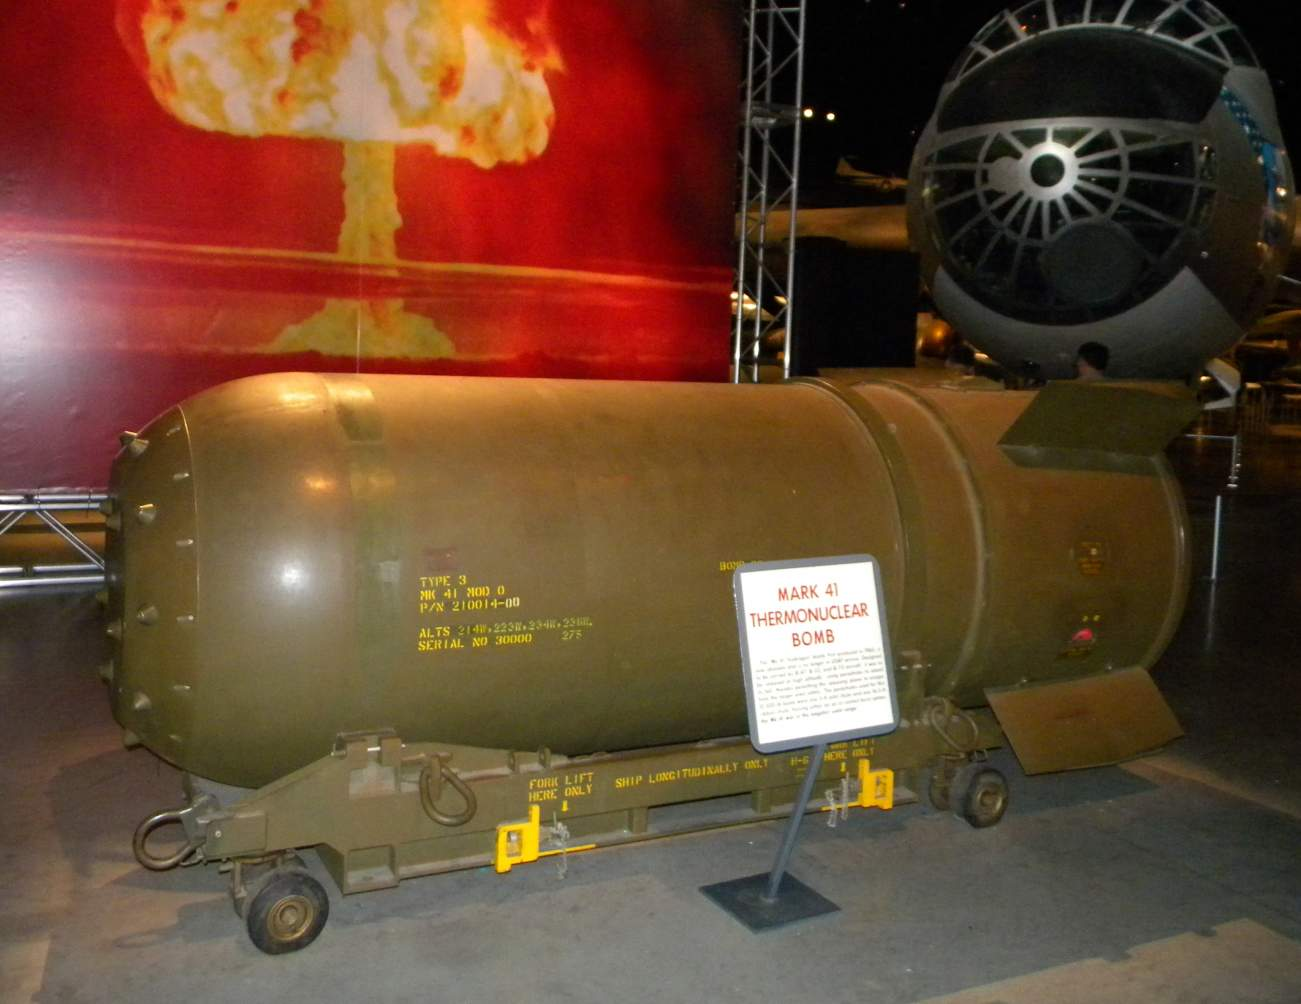 South Africa: They Built Nuclear Weapons and Then Gave Them Up. Why?